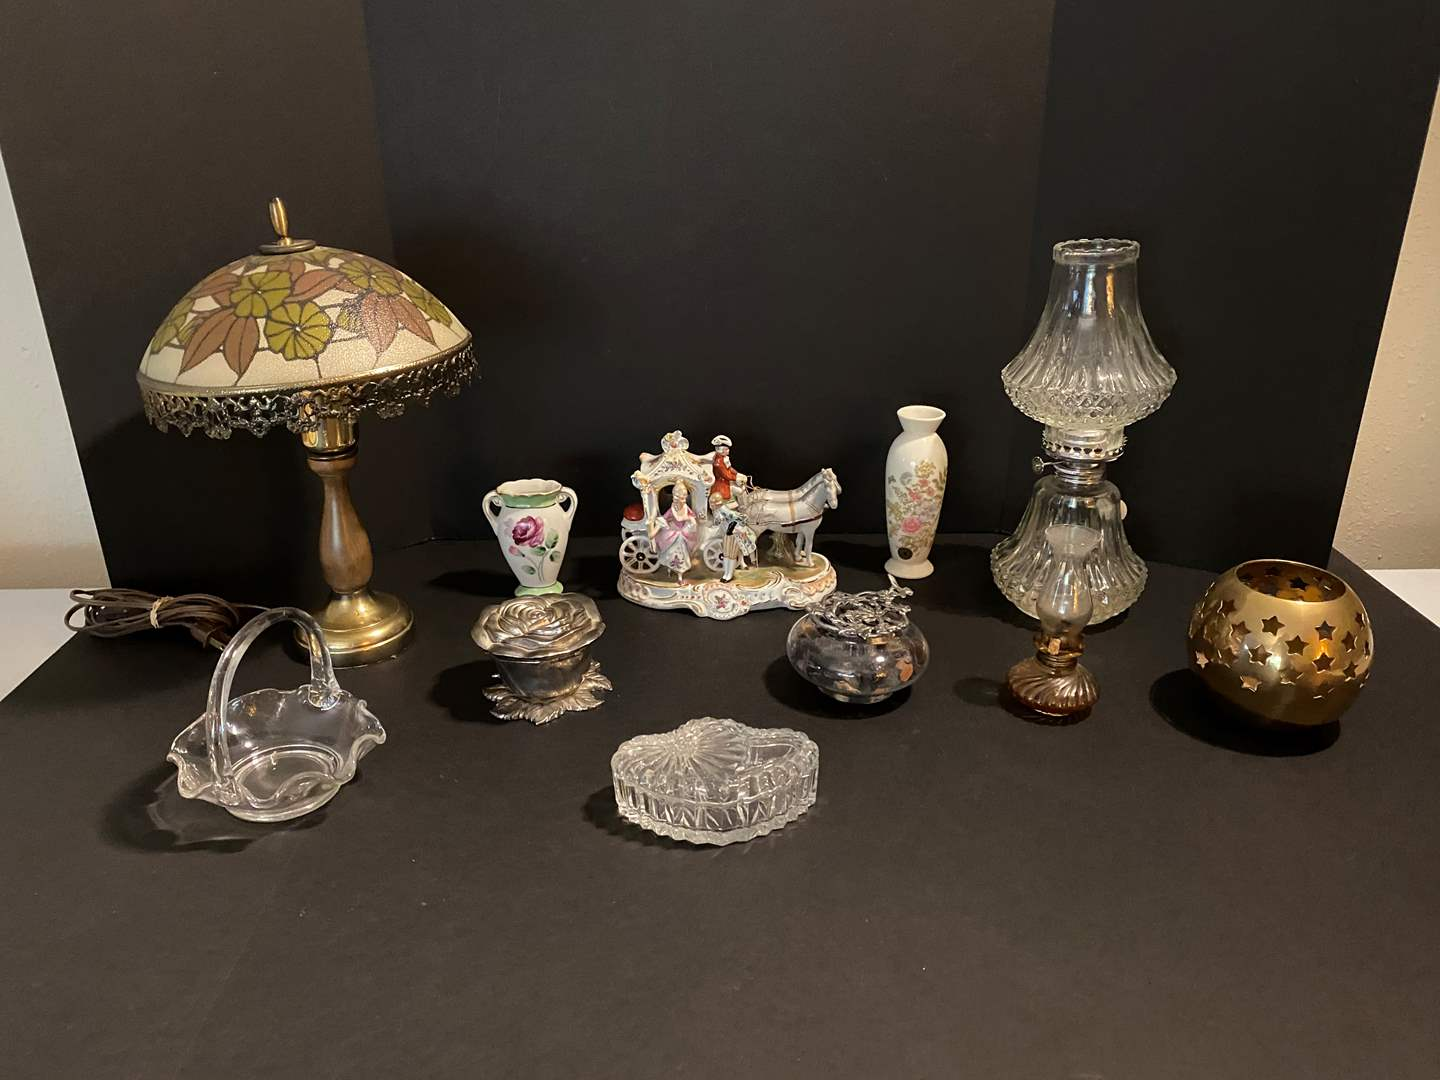 Lot # 18 - Vintage Crystal Oil Lamp, Small Lamp w/Glass Shade, Glass Dishes, Small Vases & More.. (main image)